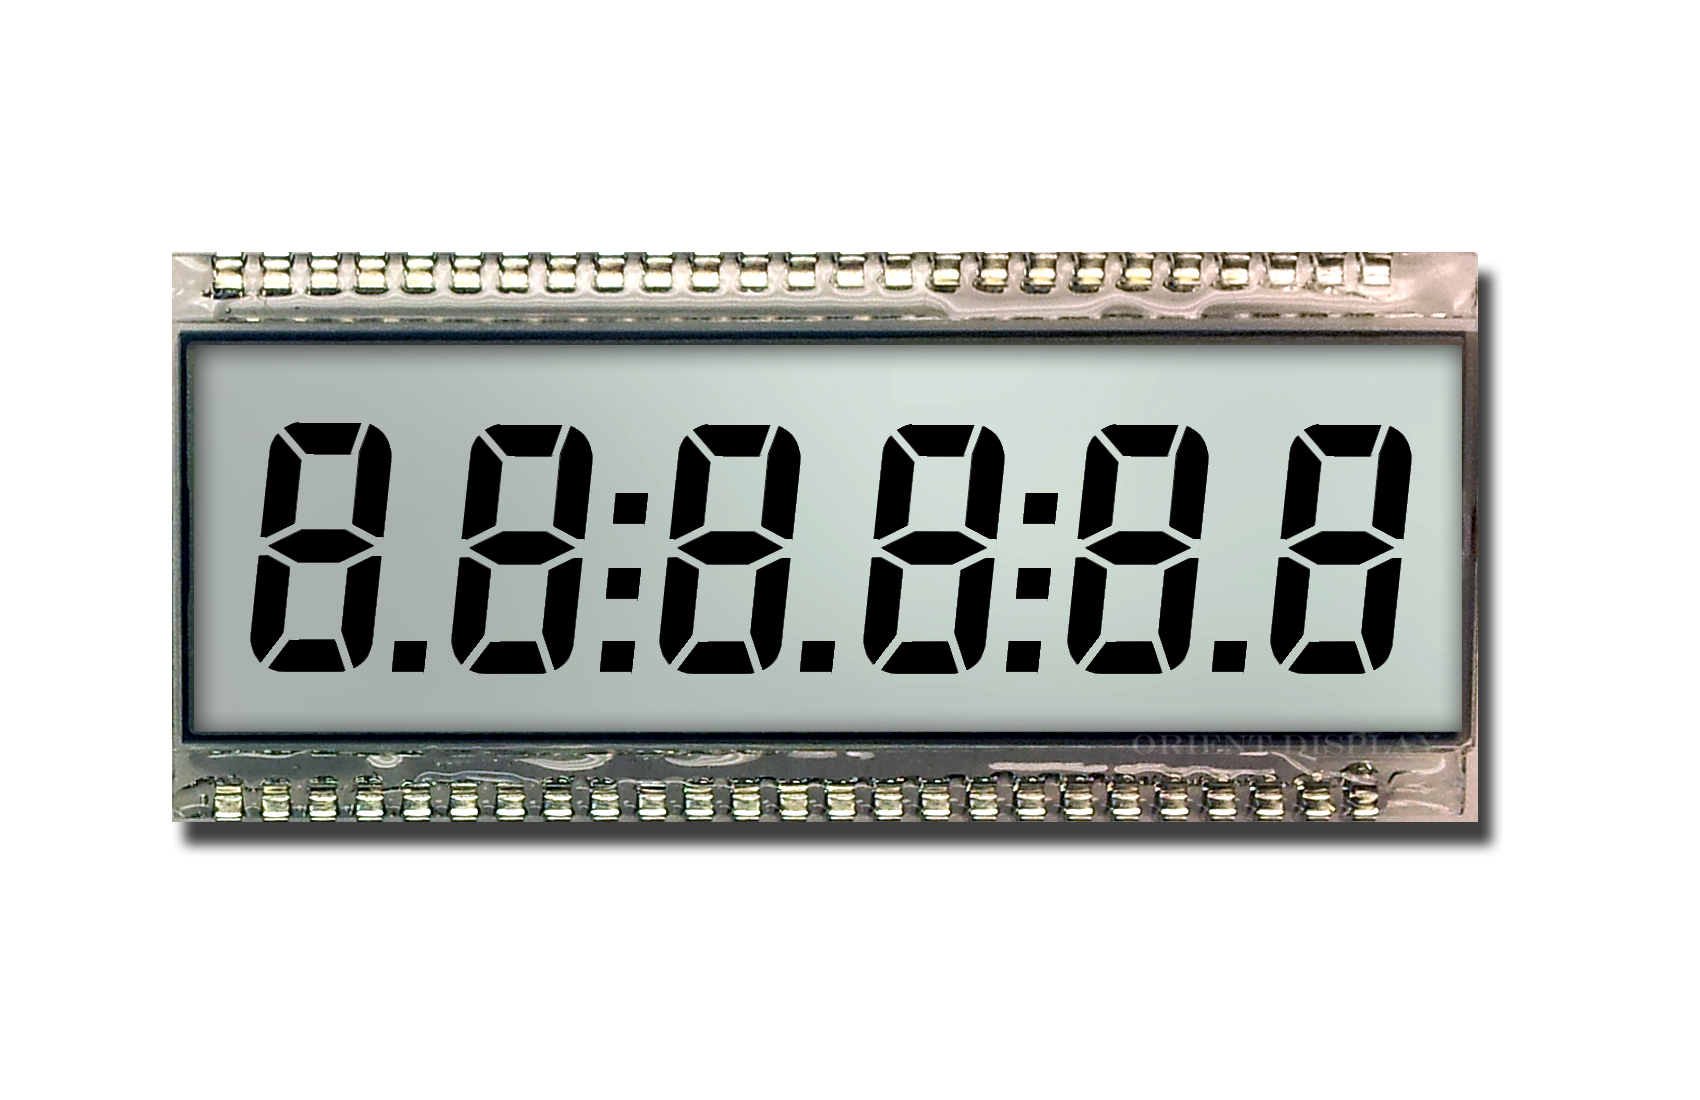 OD-609R (6 Digit LCD Glass Panel)